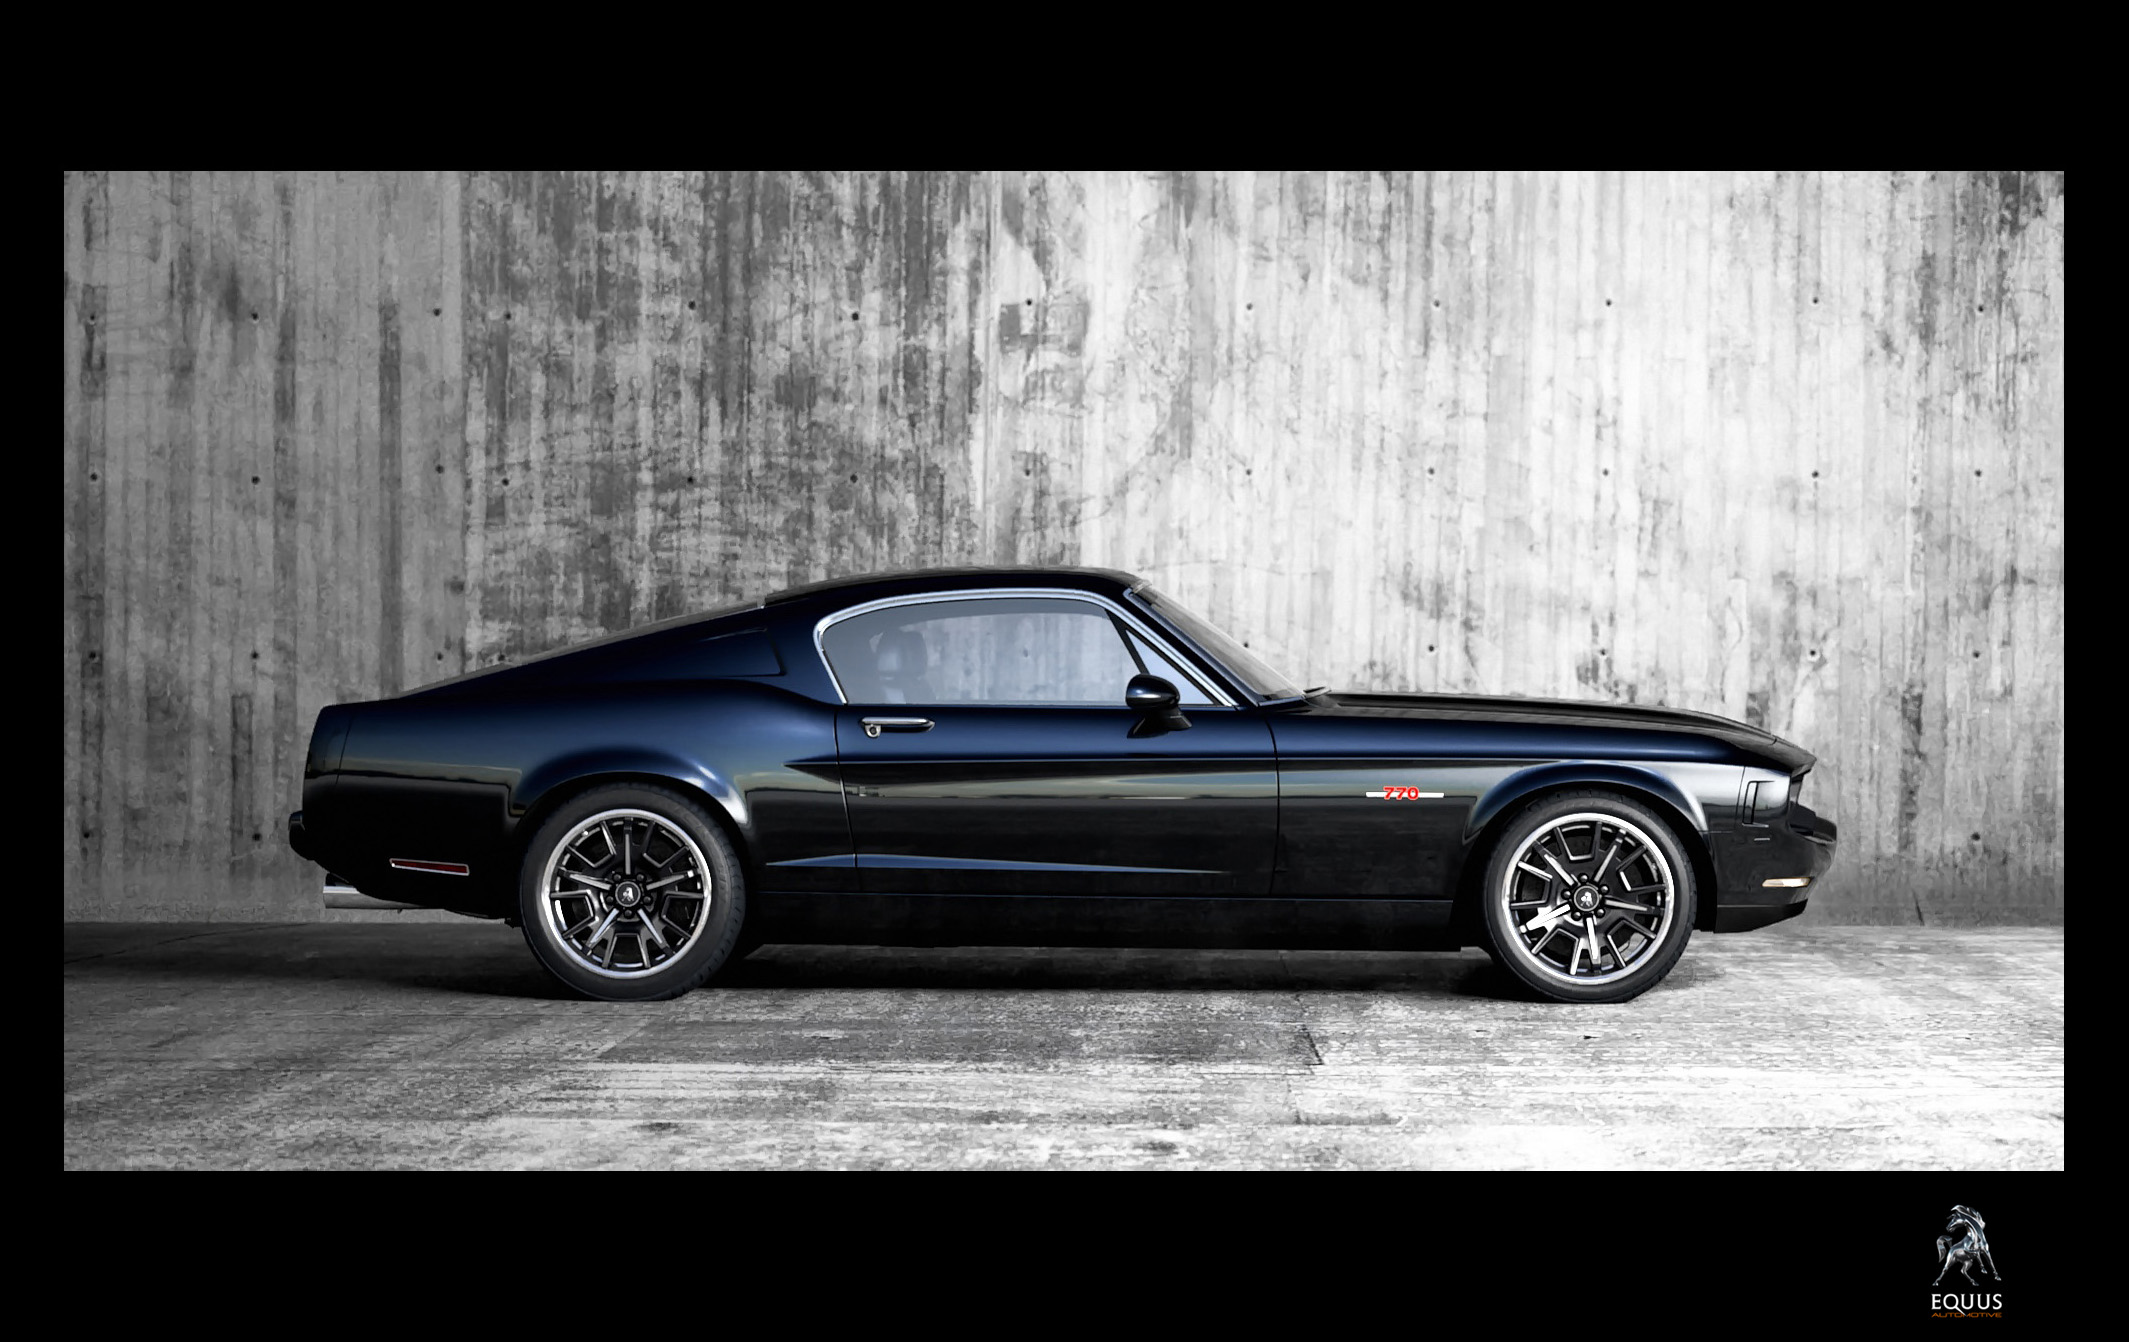 EQUUS Automotive BASS770 - USA